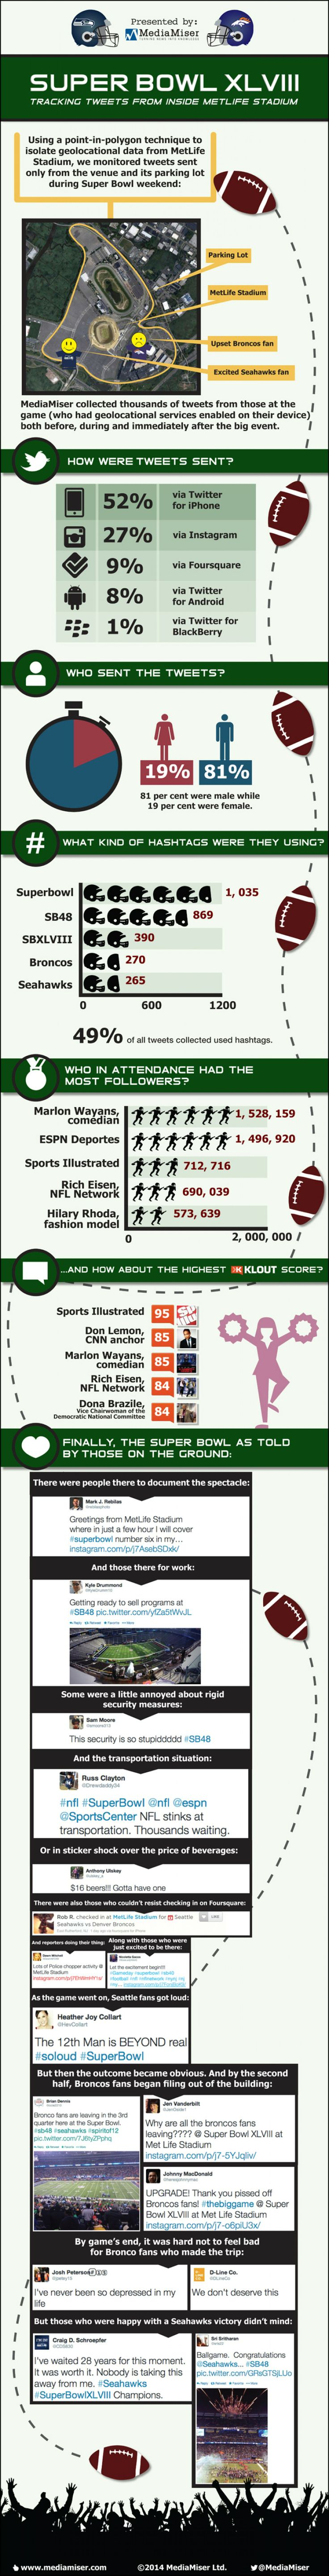 Super Bowl XLVIII: Tracking Tweets from Inside MetLife Stadium Infographic  @Heather Joy